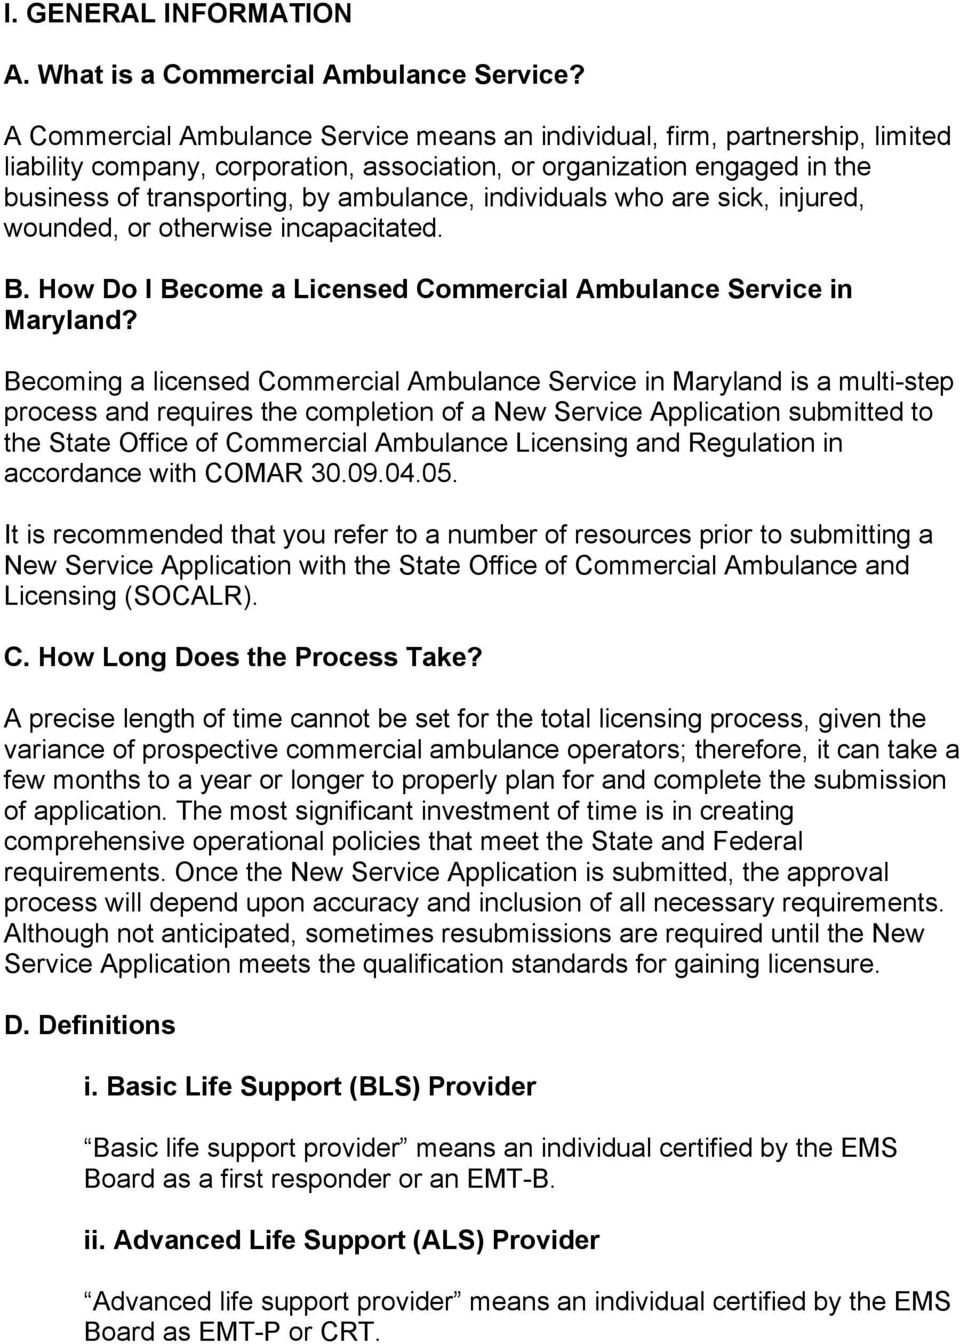 individuals who are sick, injured, wounded, or otherwise incapacitated. B. How Do I Become a Licensed Commercial Ambulance Service in Maryland?